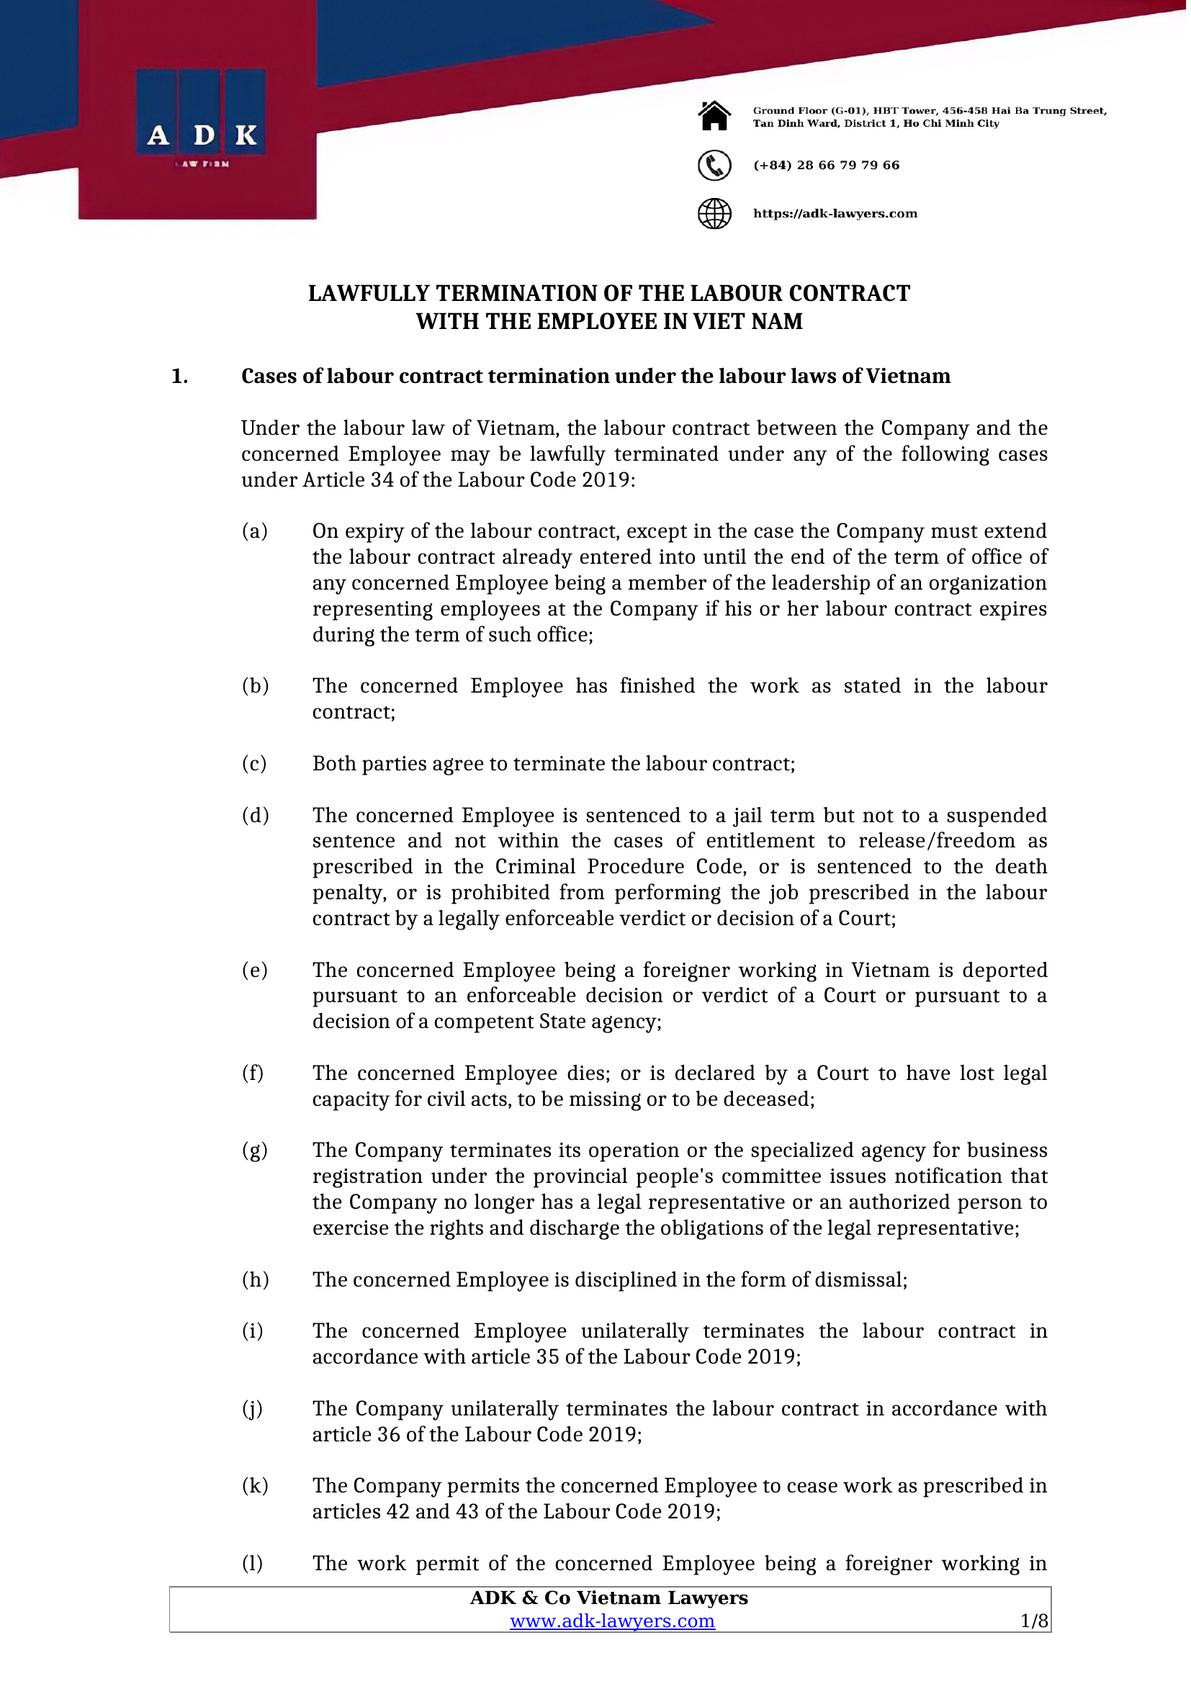 Legal article about labor contract termination -0